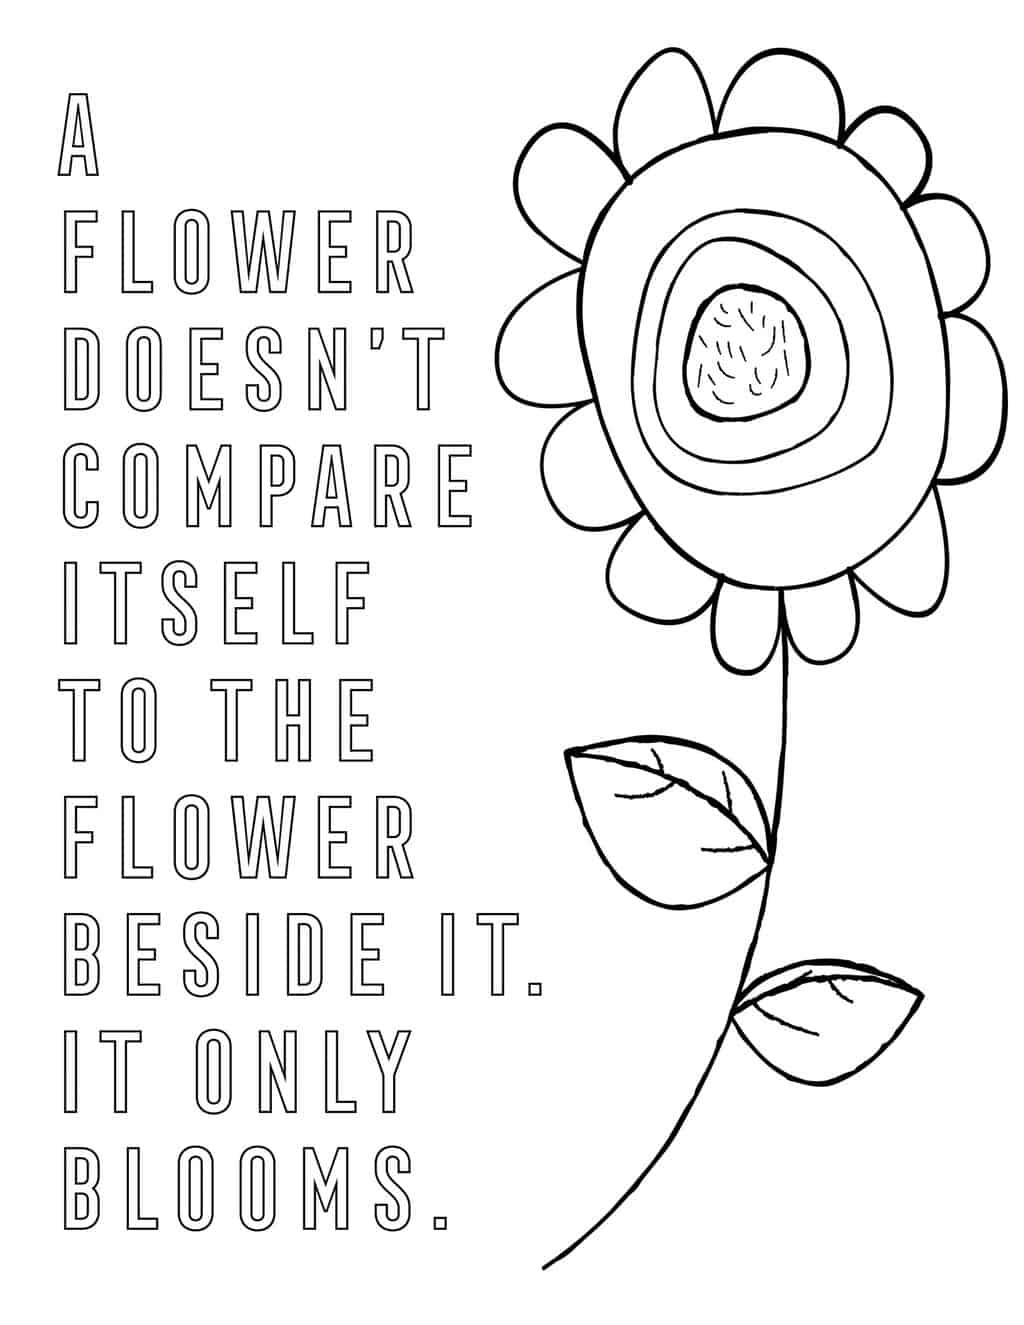 a coloring page of a large flower with a quote next to it